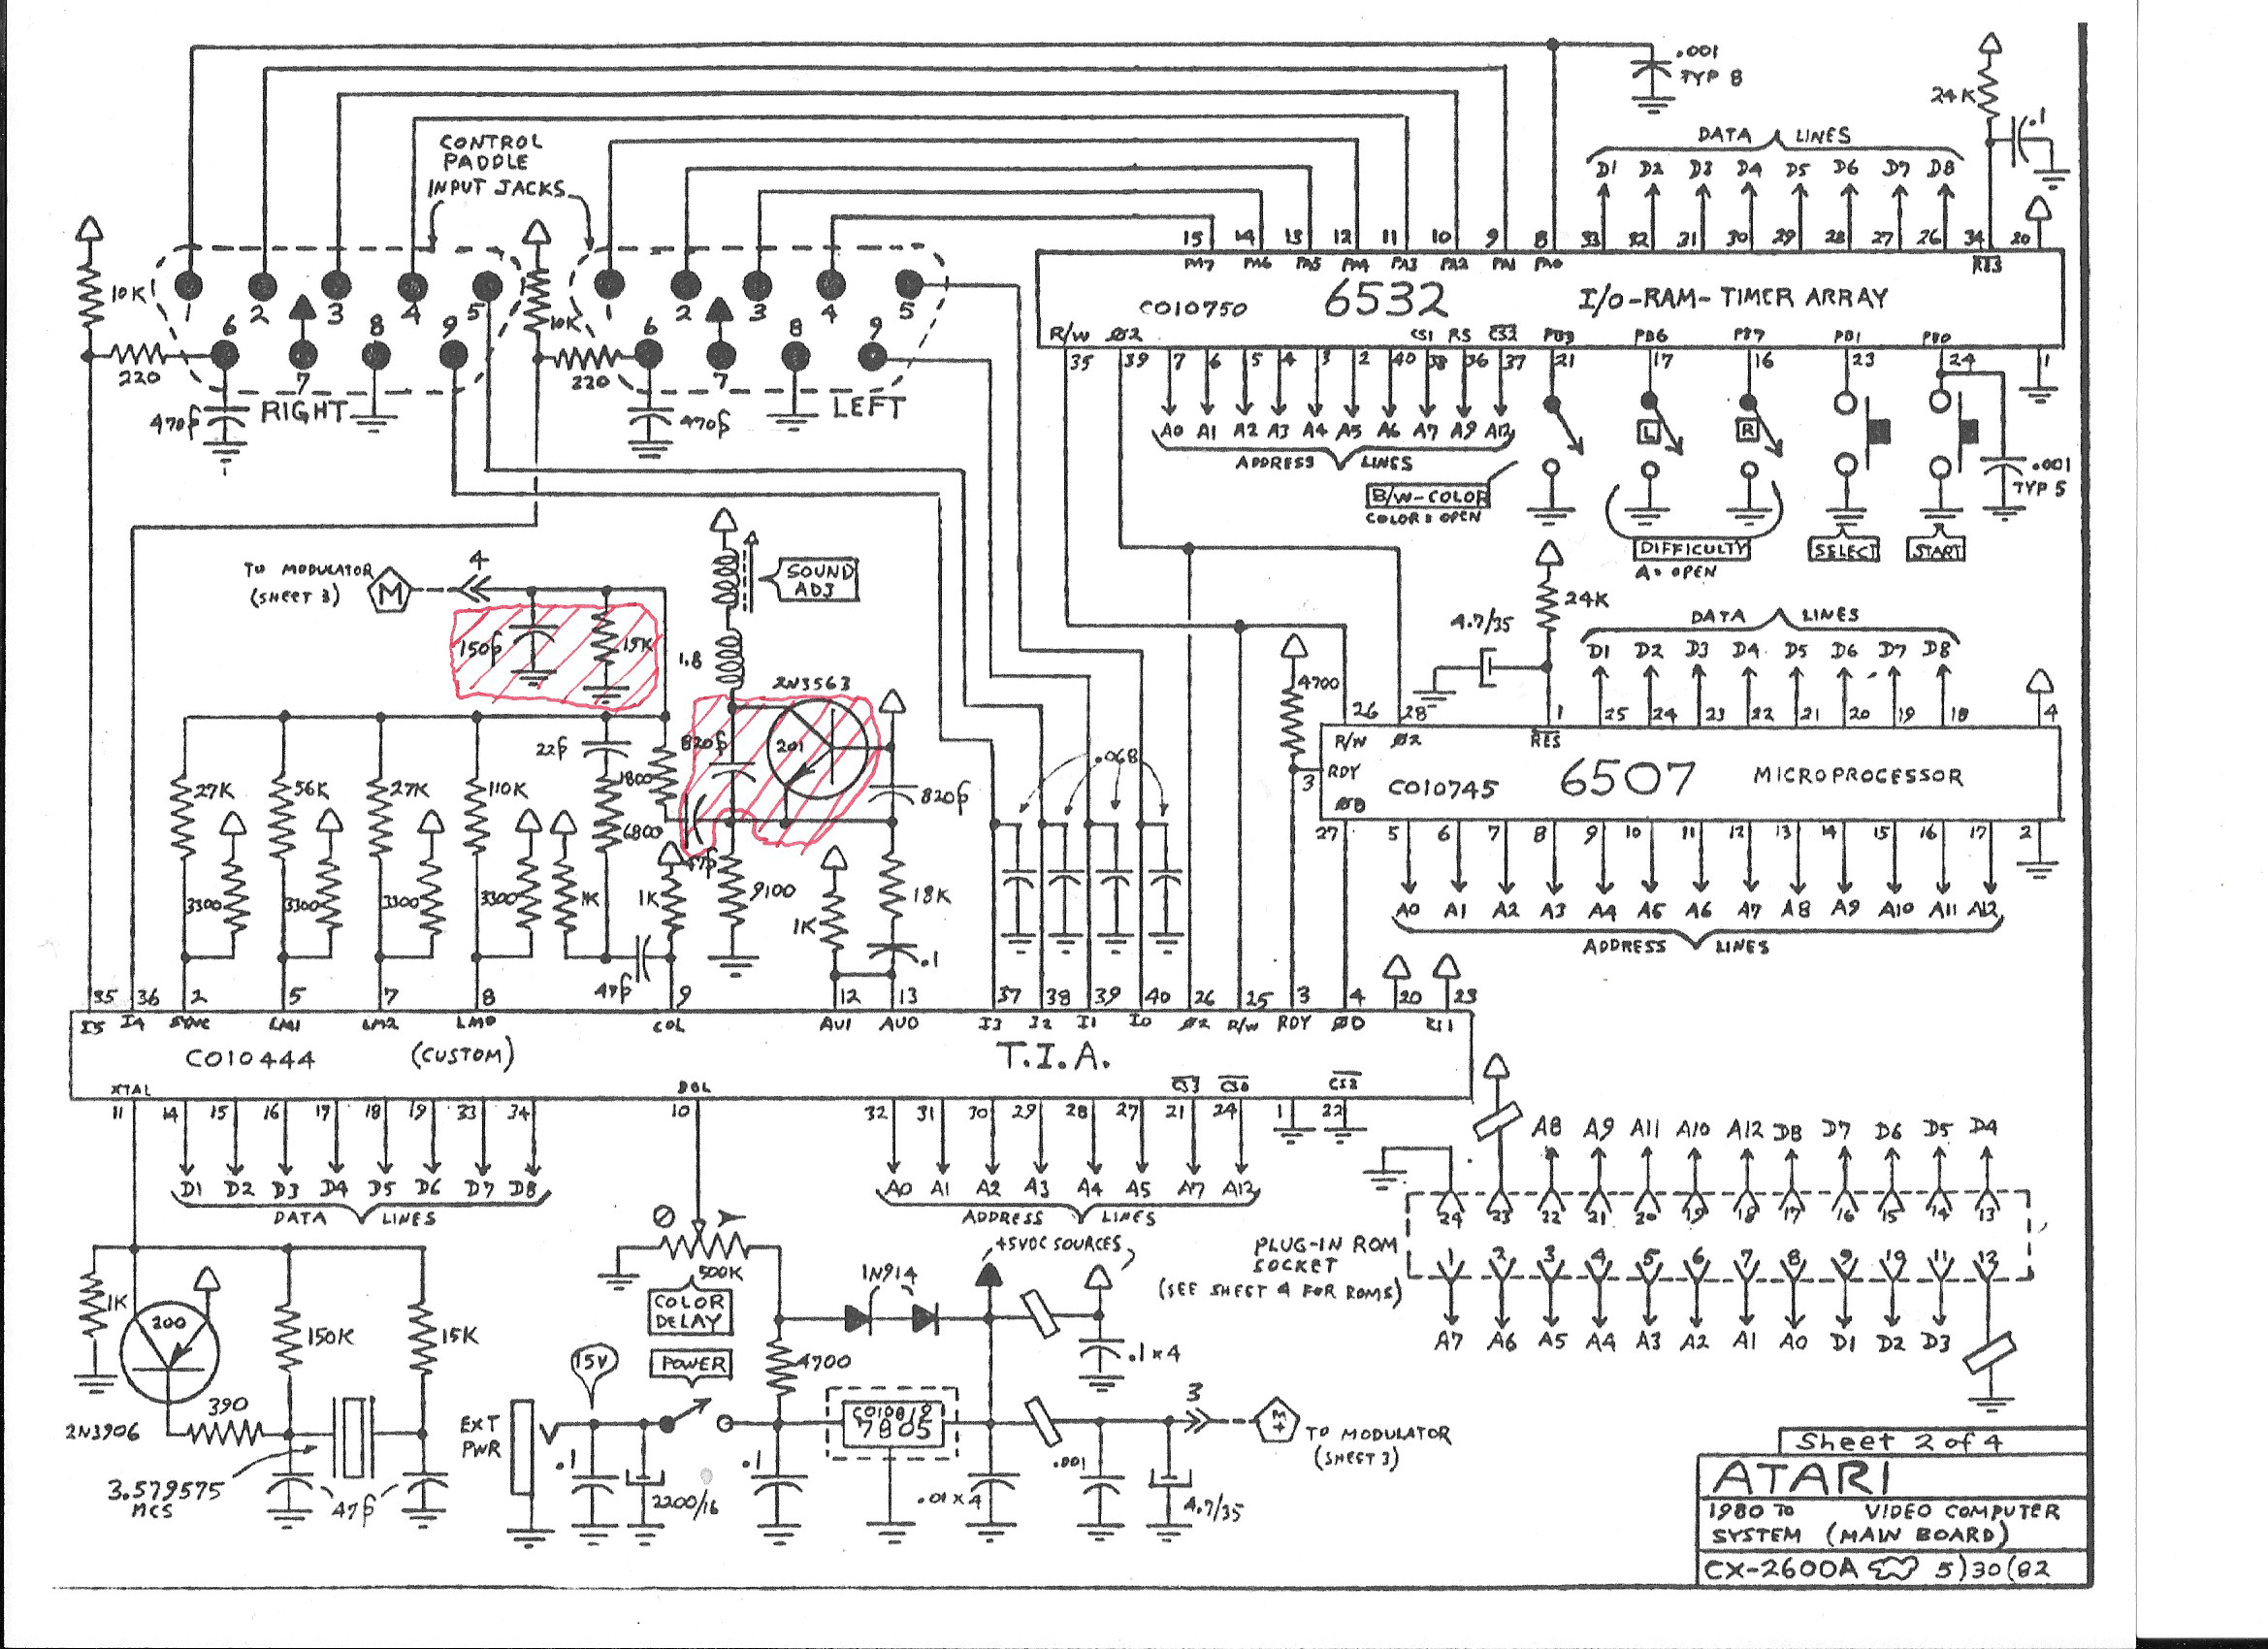 lexus is220d wiring diagram wiring library Lexus IS 350 F Sport ps3 super slim wiring diagram ps3 controller wiring